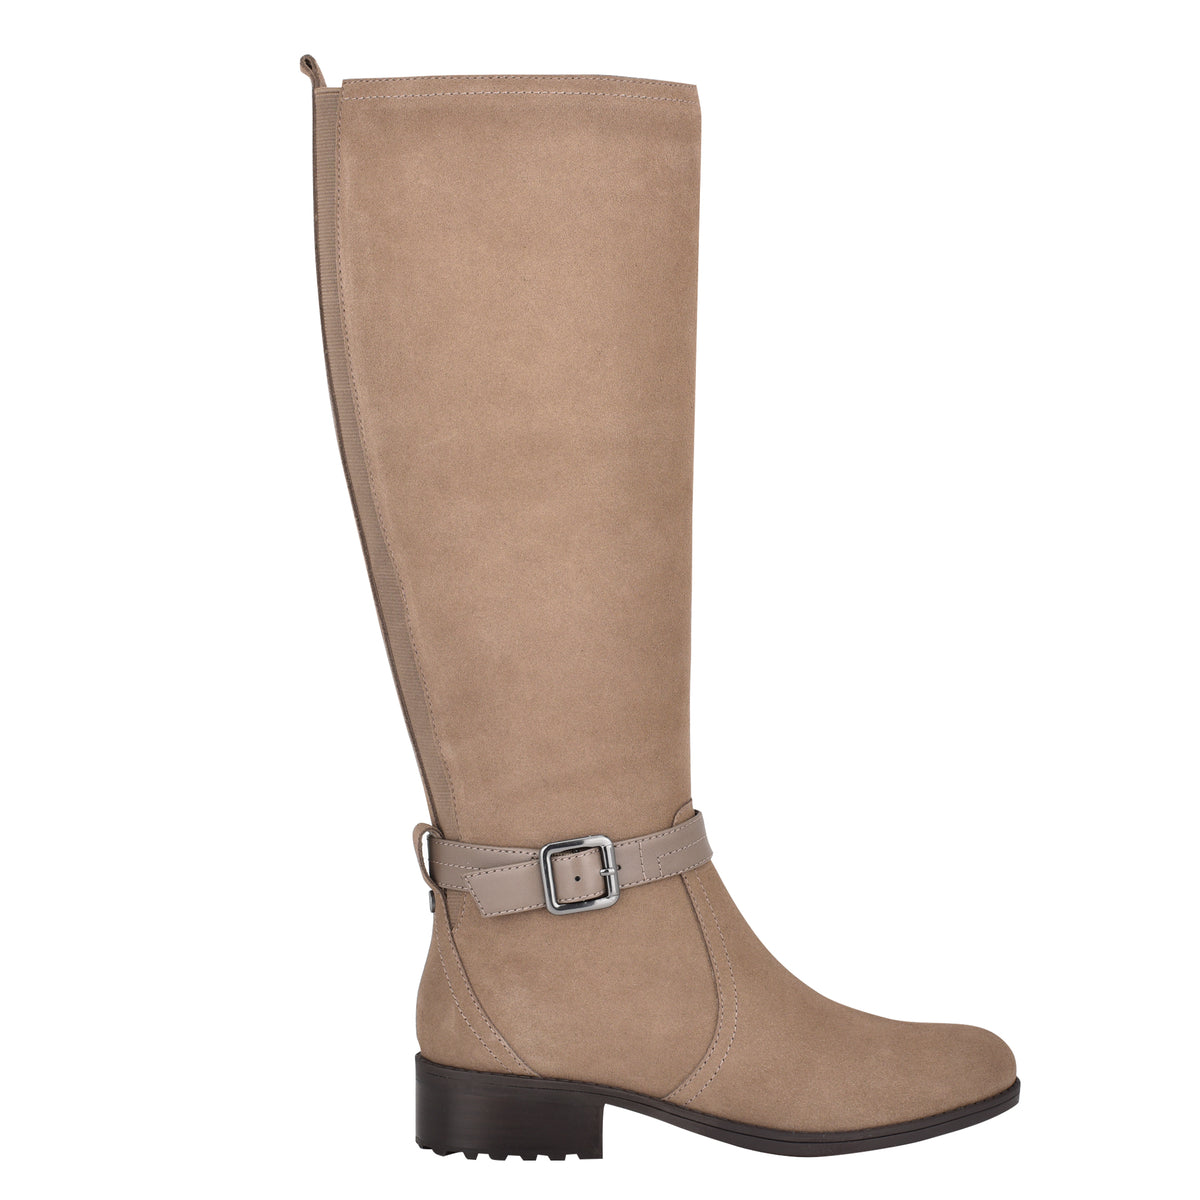 Reverie Tall Boots